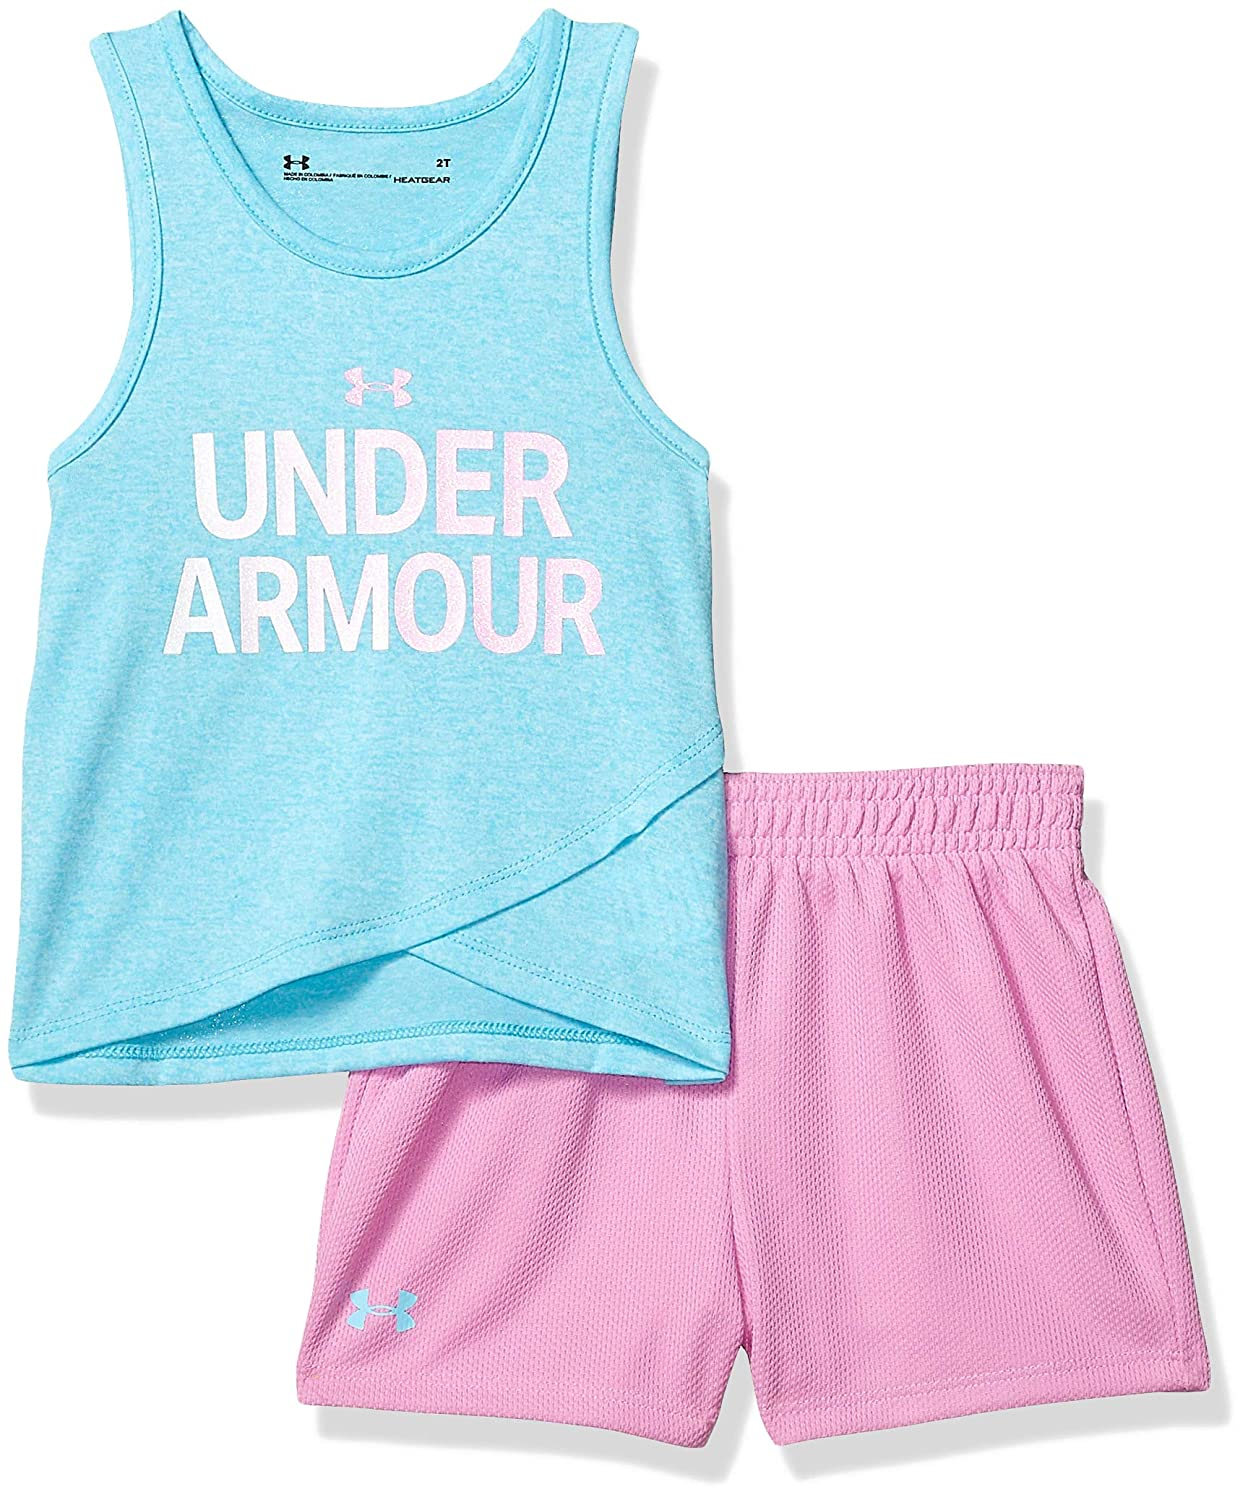 93b4e139b6de2 Under Armour Girls' Tank and Short Set